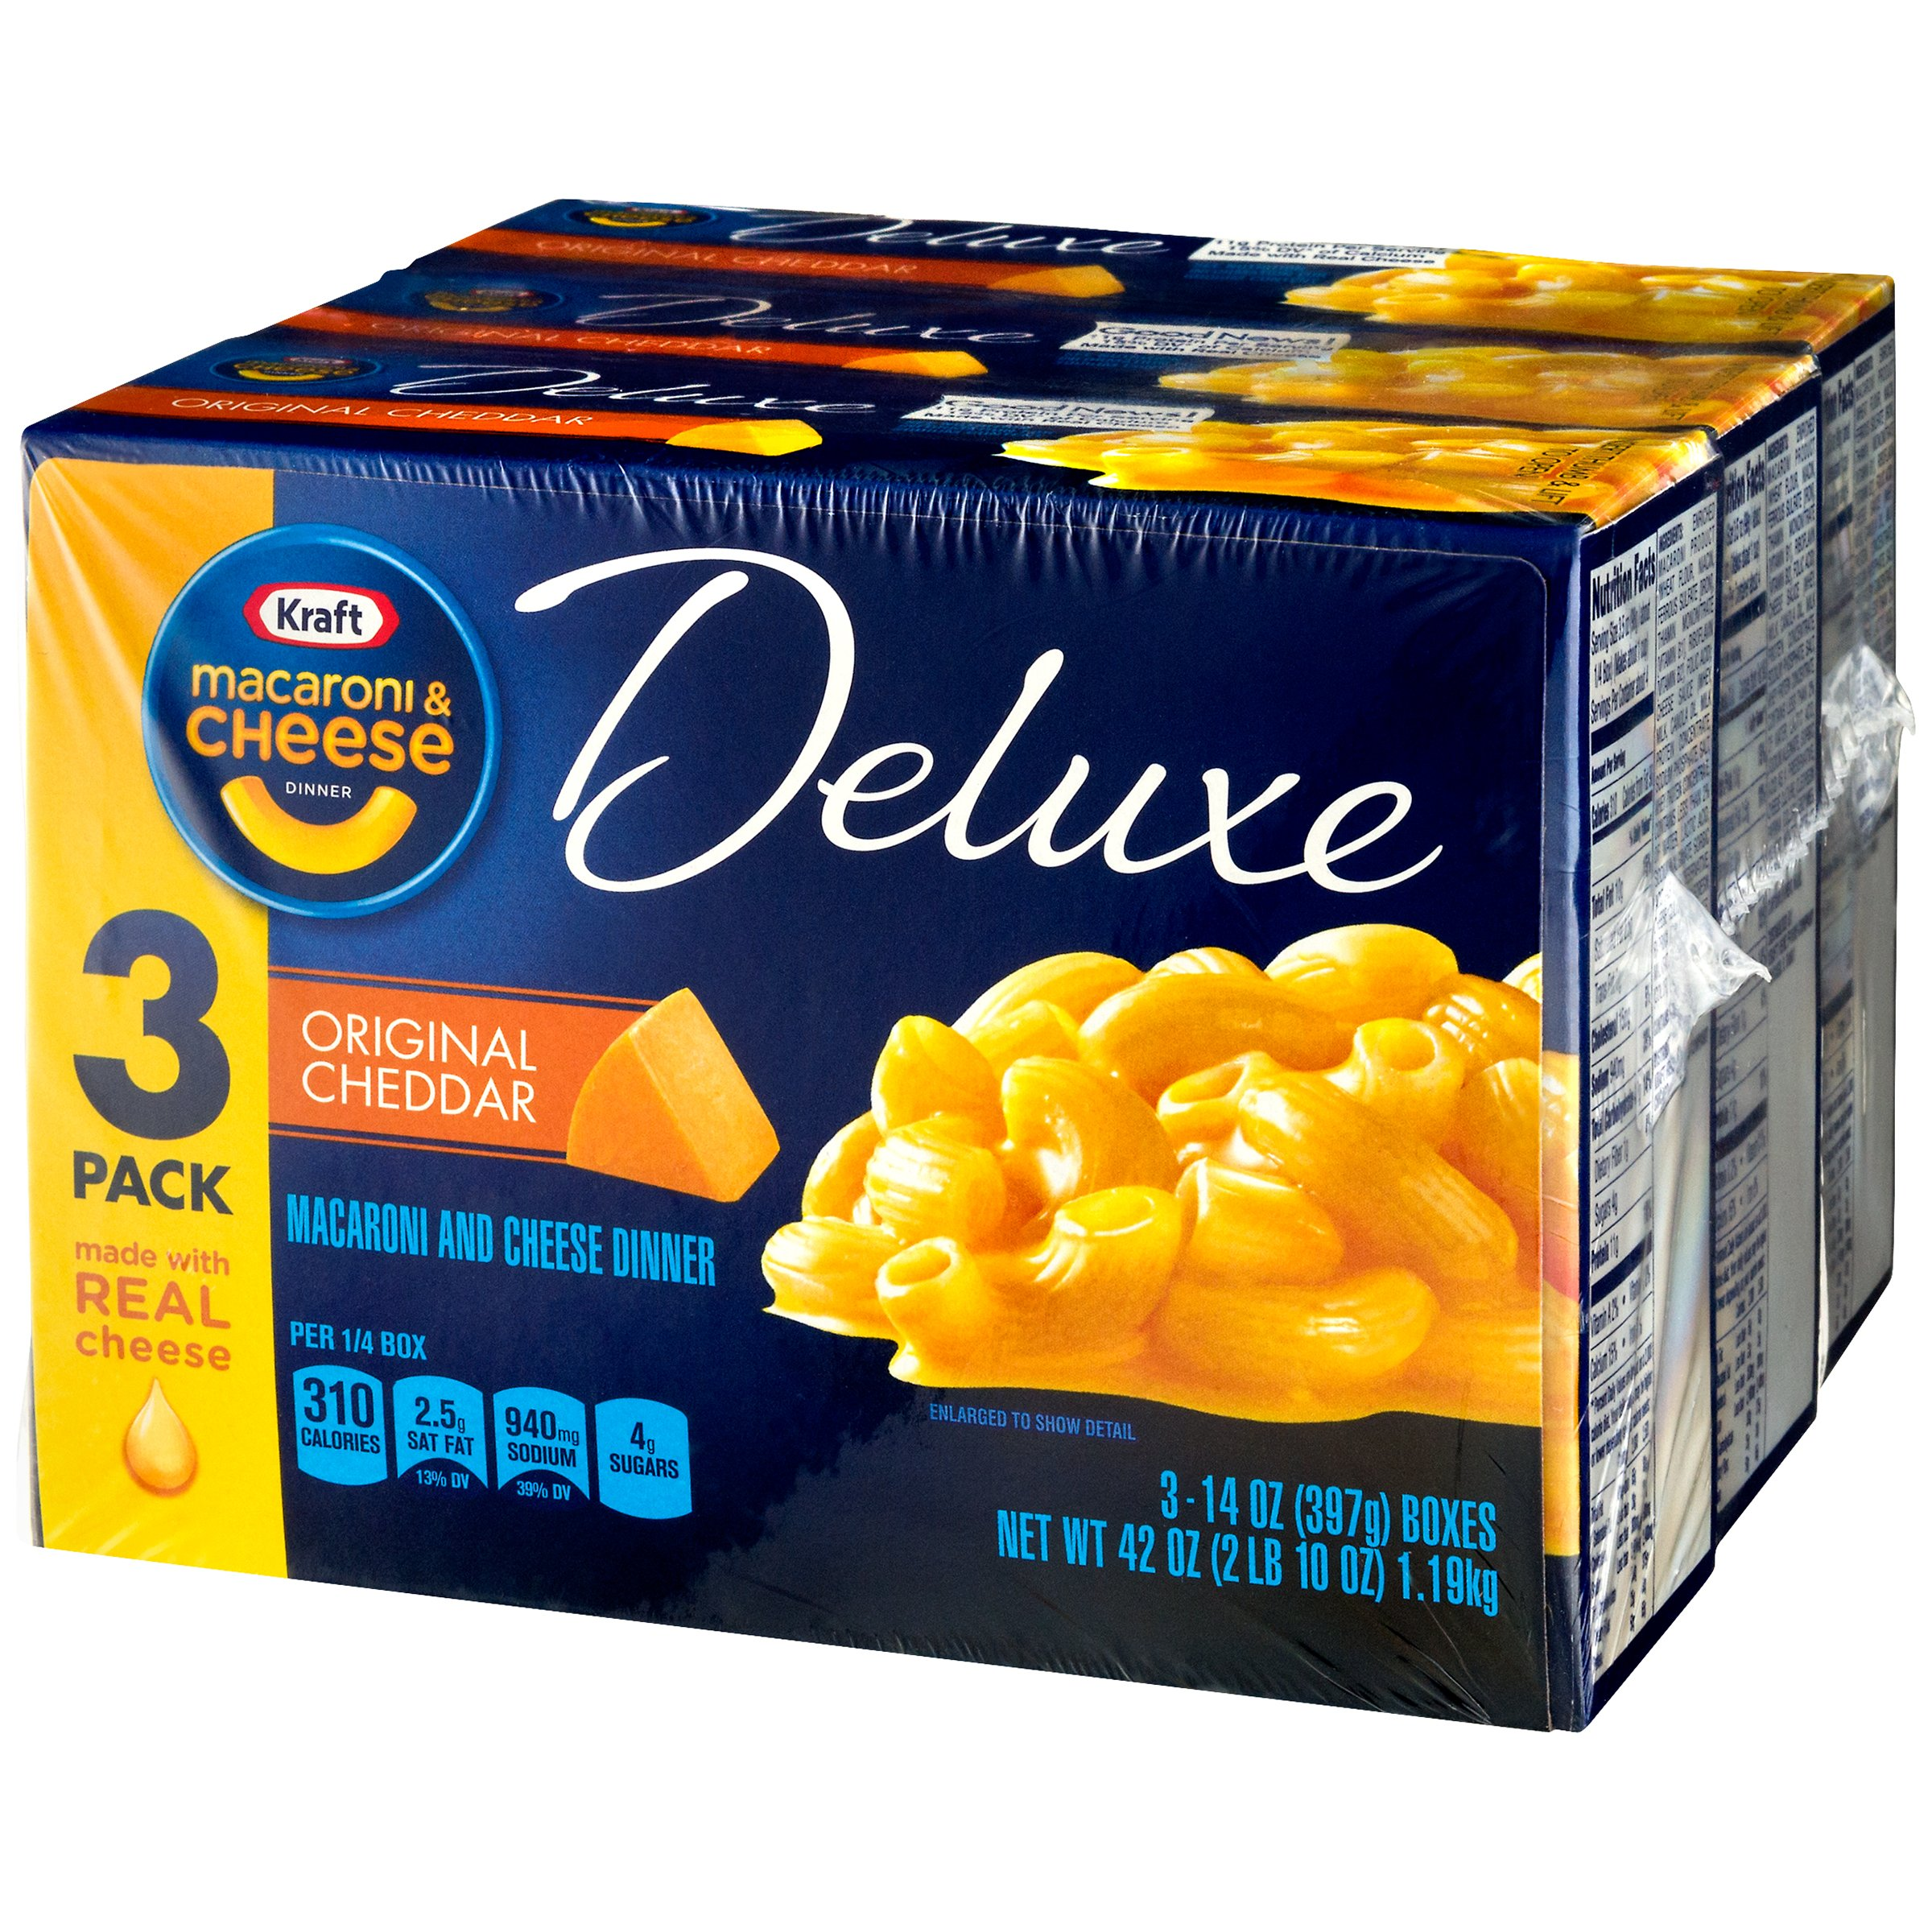 Kraft Deluxe Original Cheddar Macaroni & Cheese Dinner 3-14 oz. Boxes